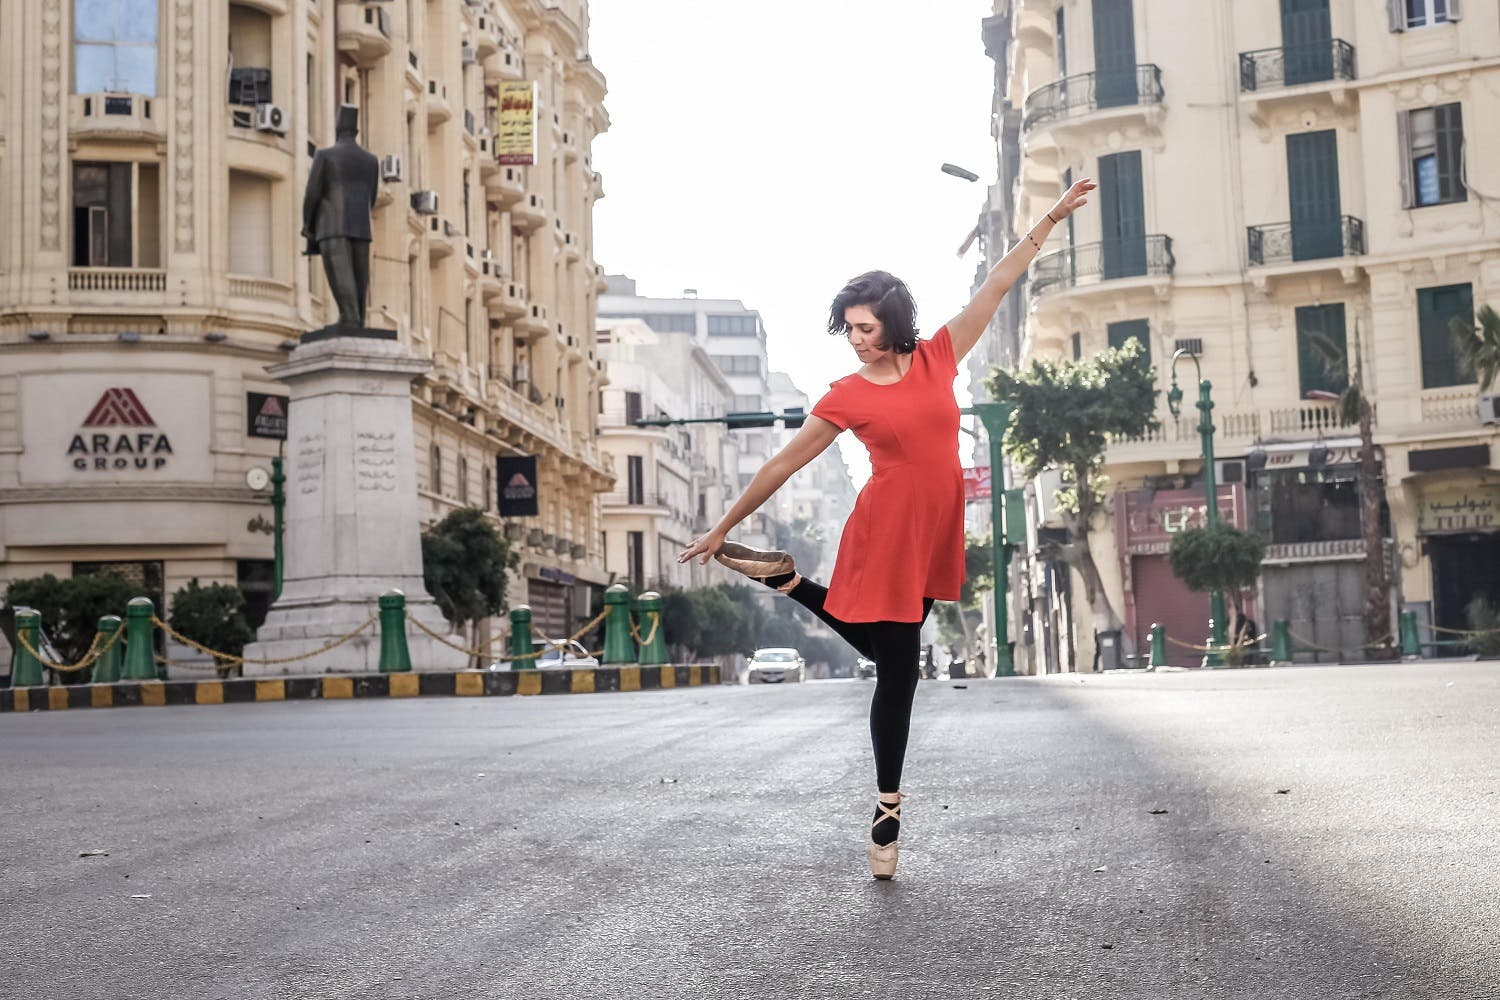 Courtesy: Ballerinas of Cairo/ Mohamed Taher/ Ahmed Fathy